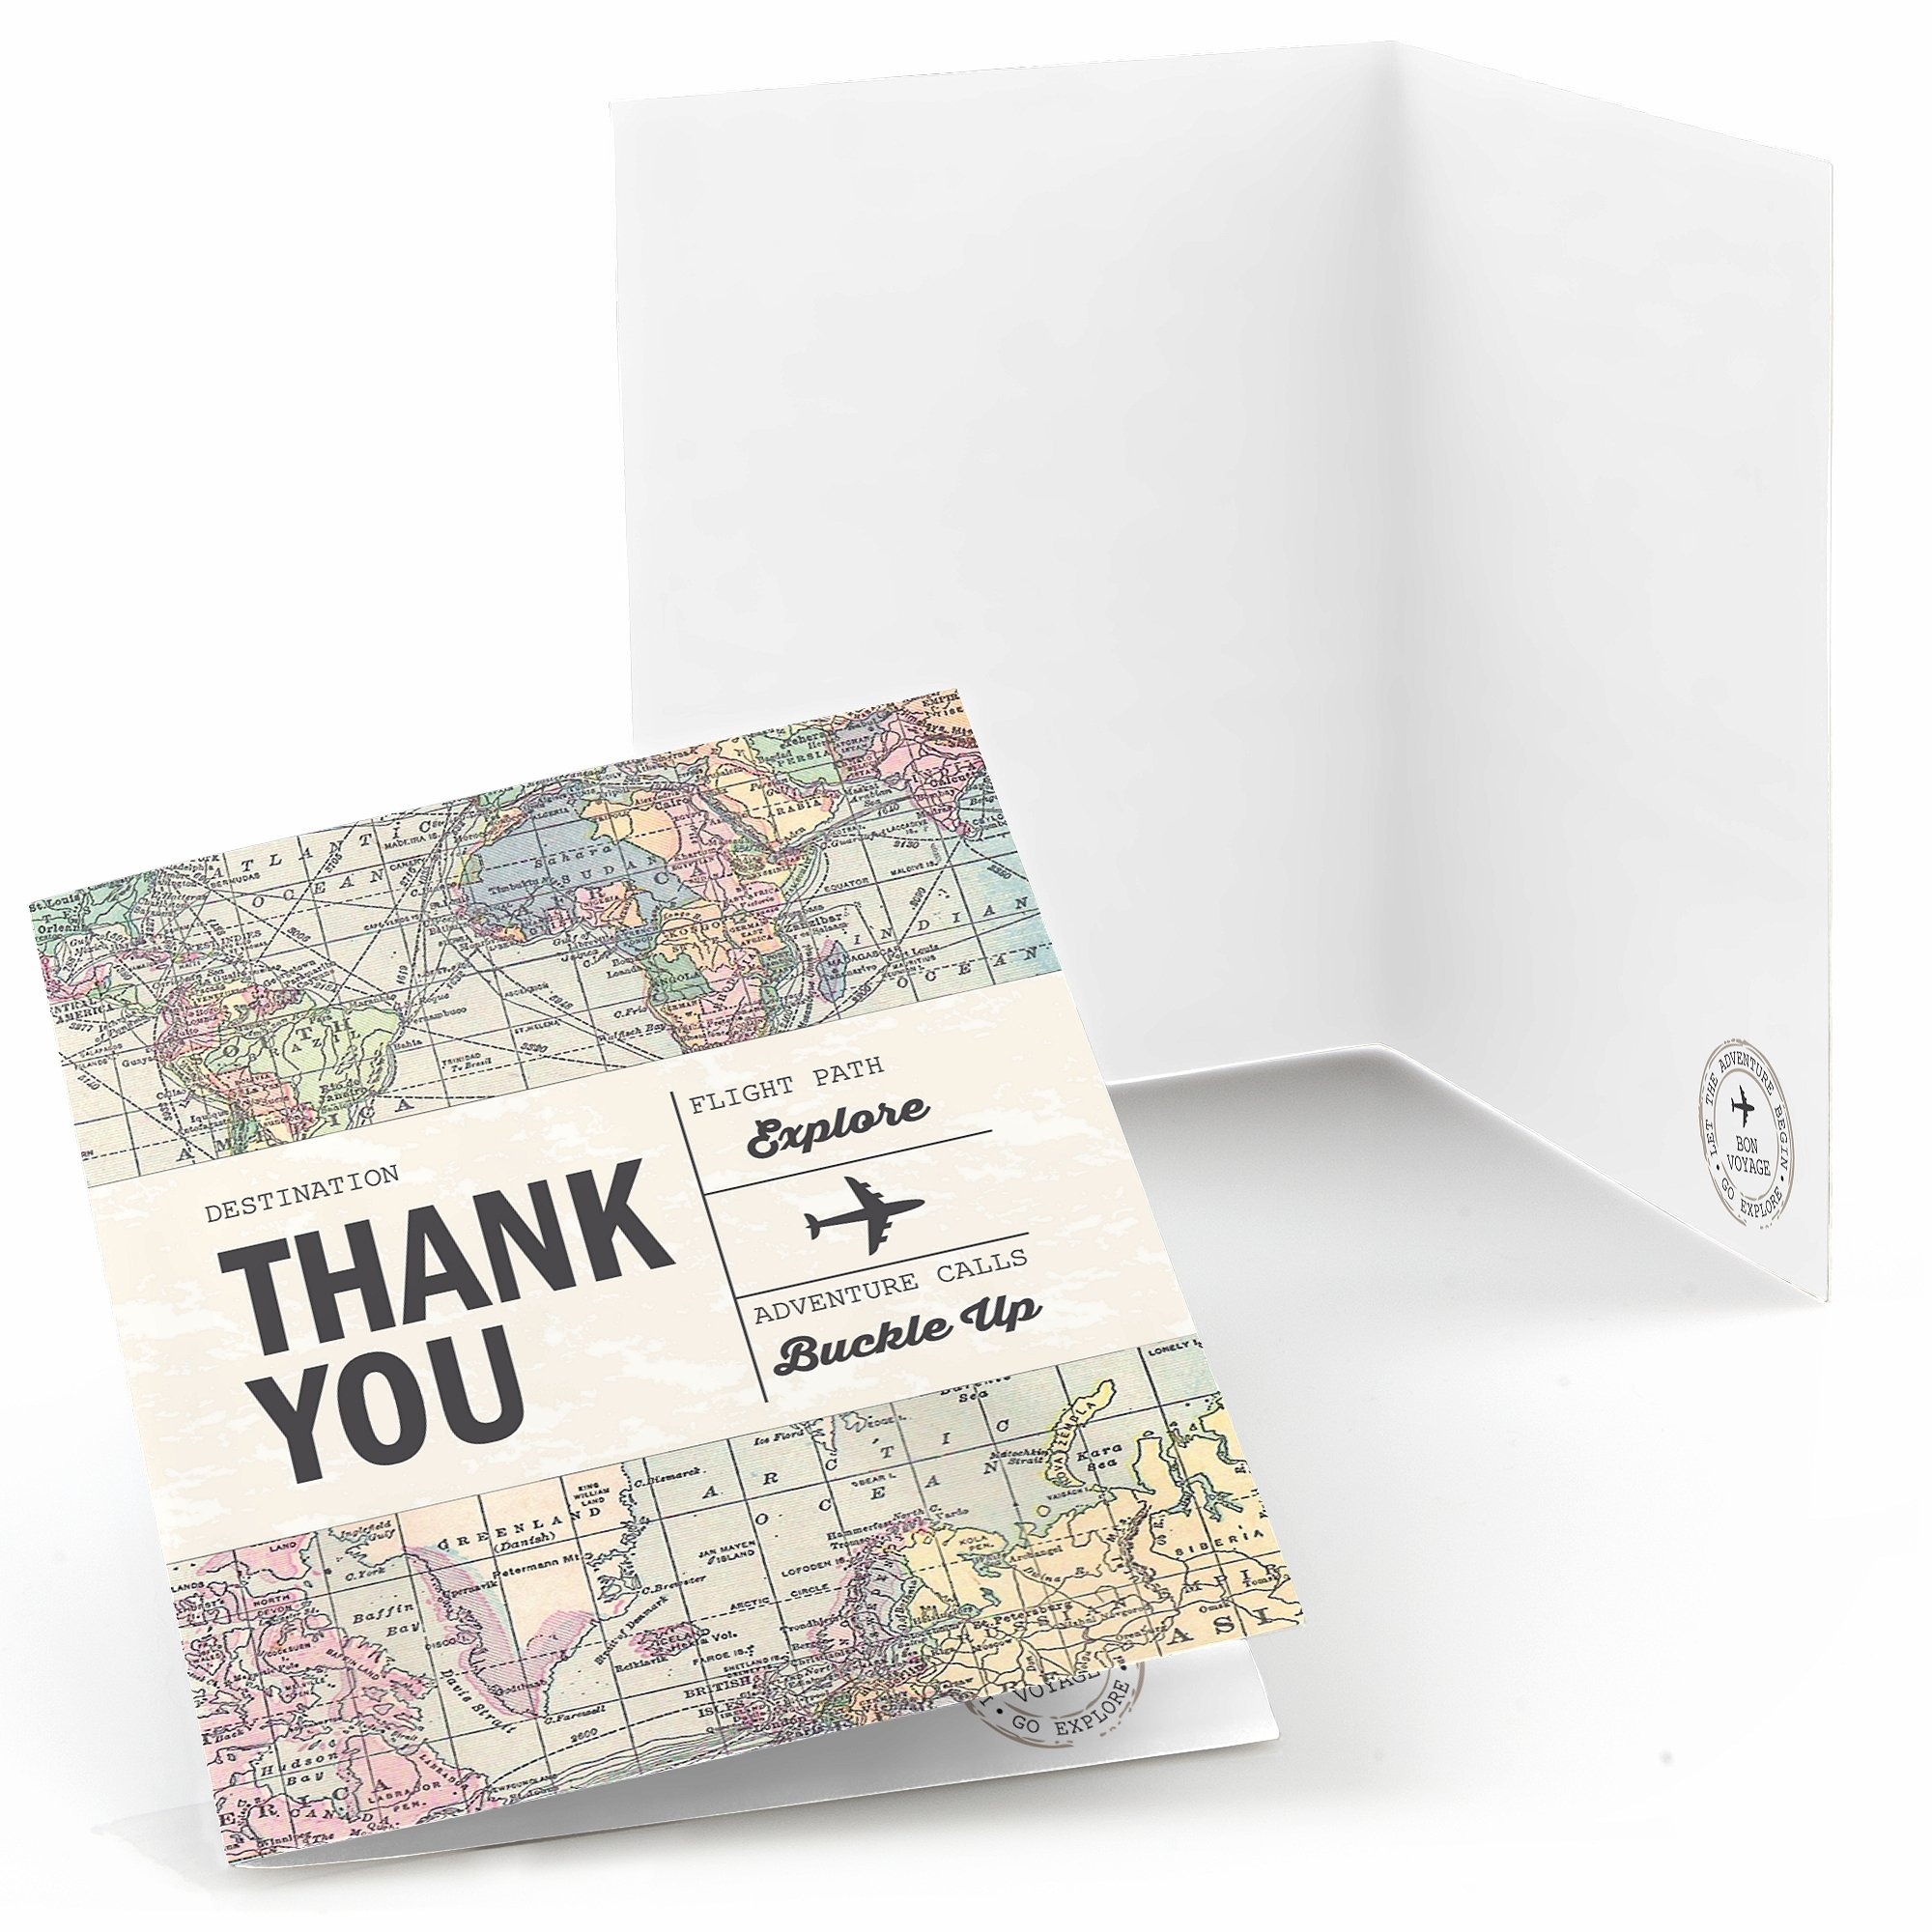 World Awaits - Travel Themed Thank You Cards - Set of 24 by Big Dot of Happiness (Image #1)